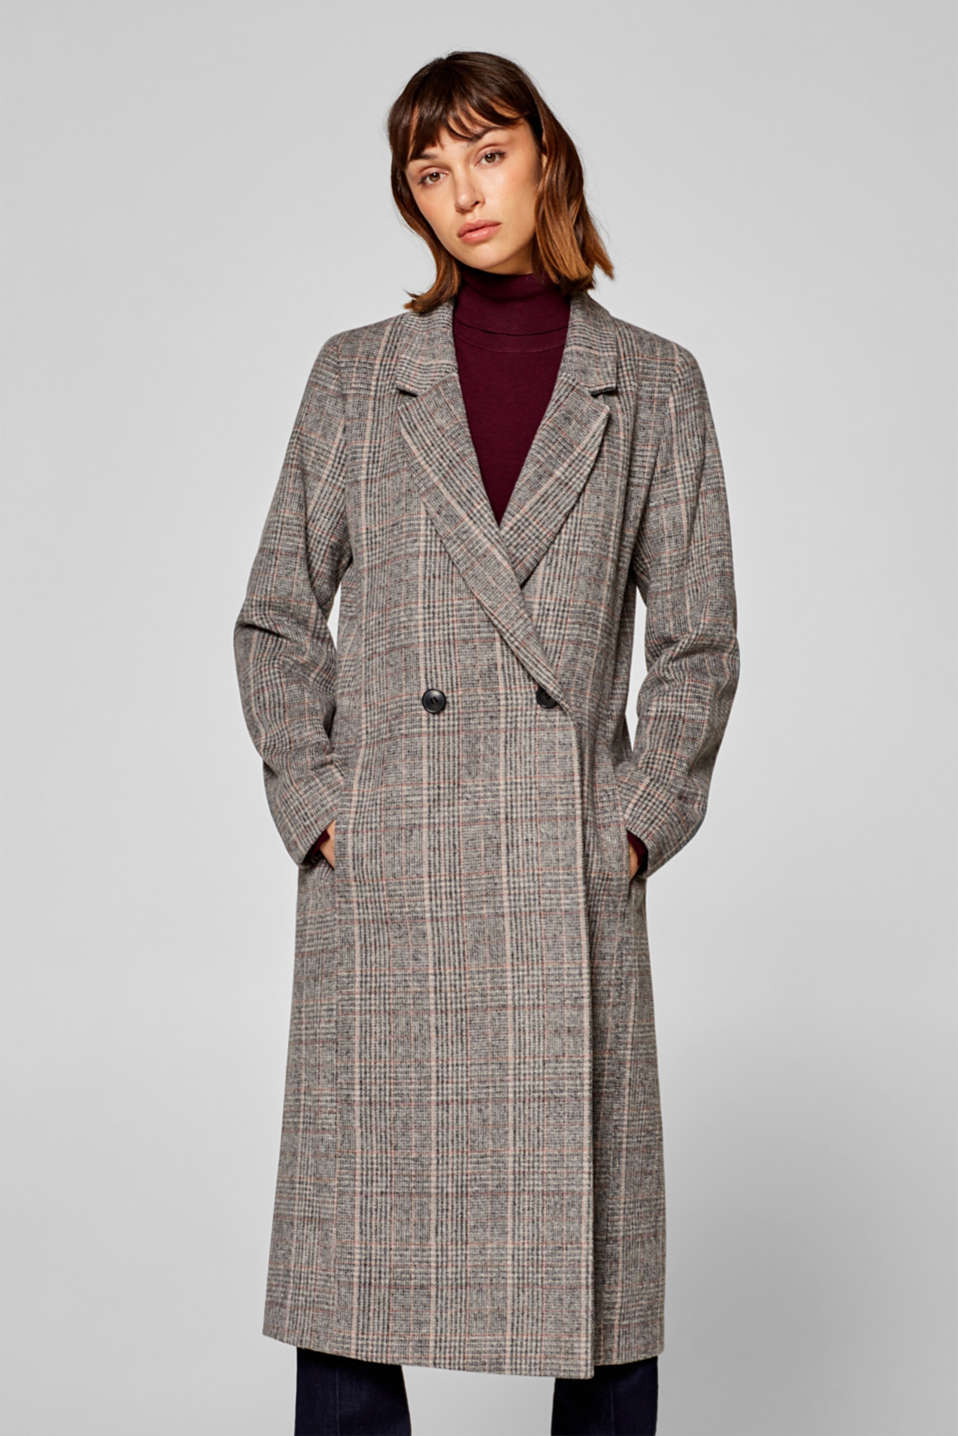 Esprit - Long coat in Prince of Wales check with wool